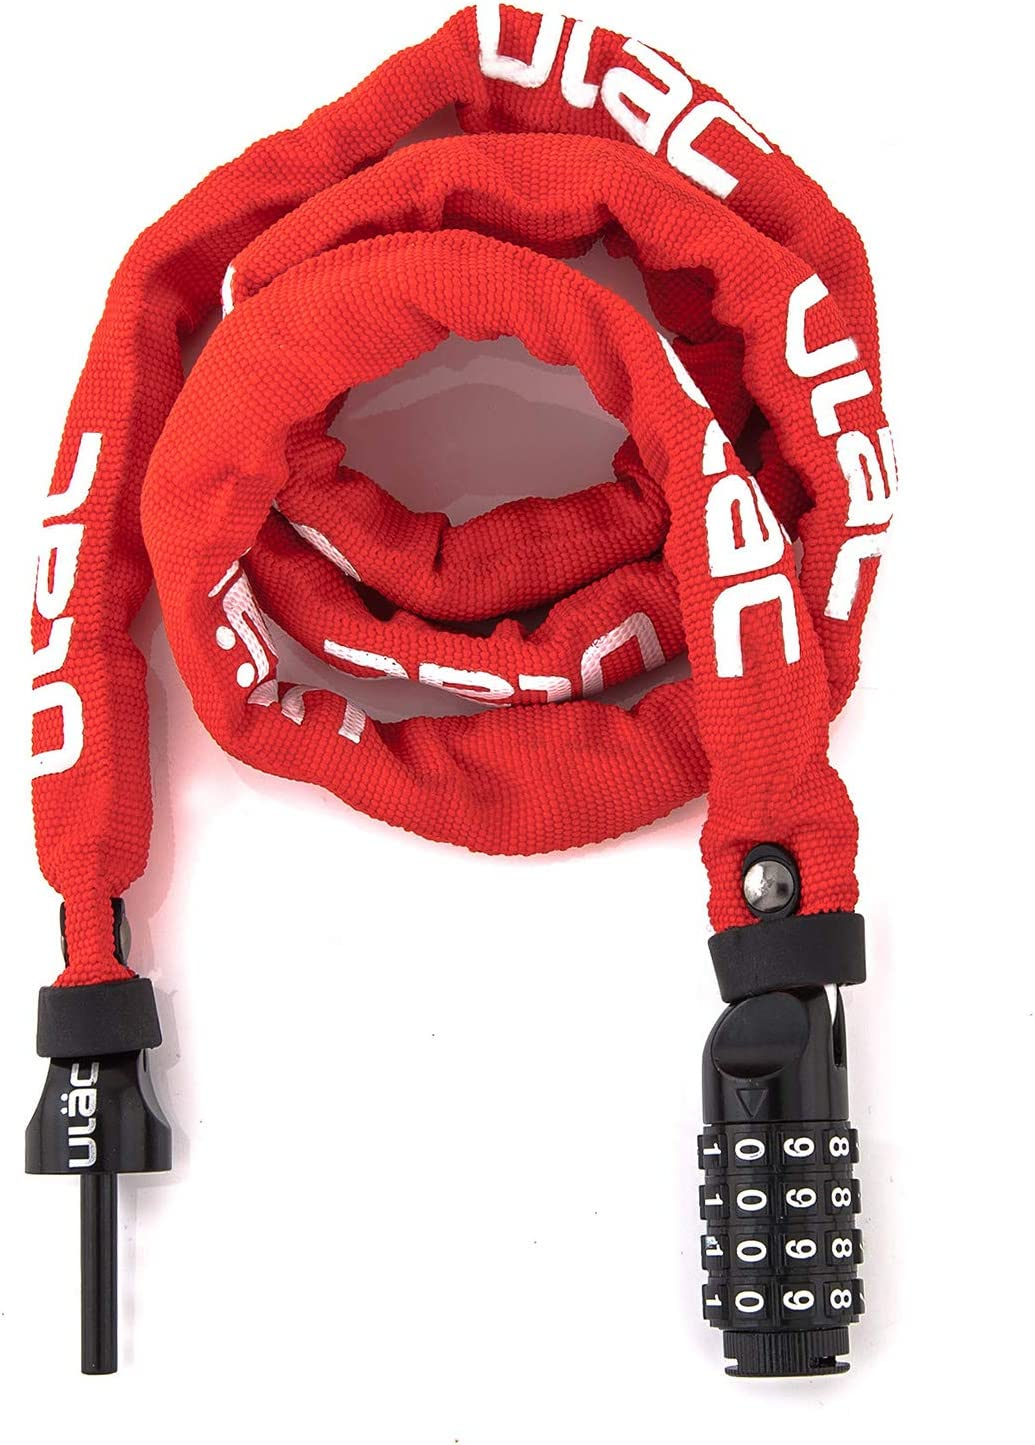 Resettable 4-Digit Combination Anti-Theft Bicycle Lock ULAC 52ND Street Neo Chain Lock Combo